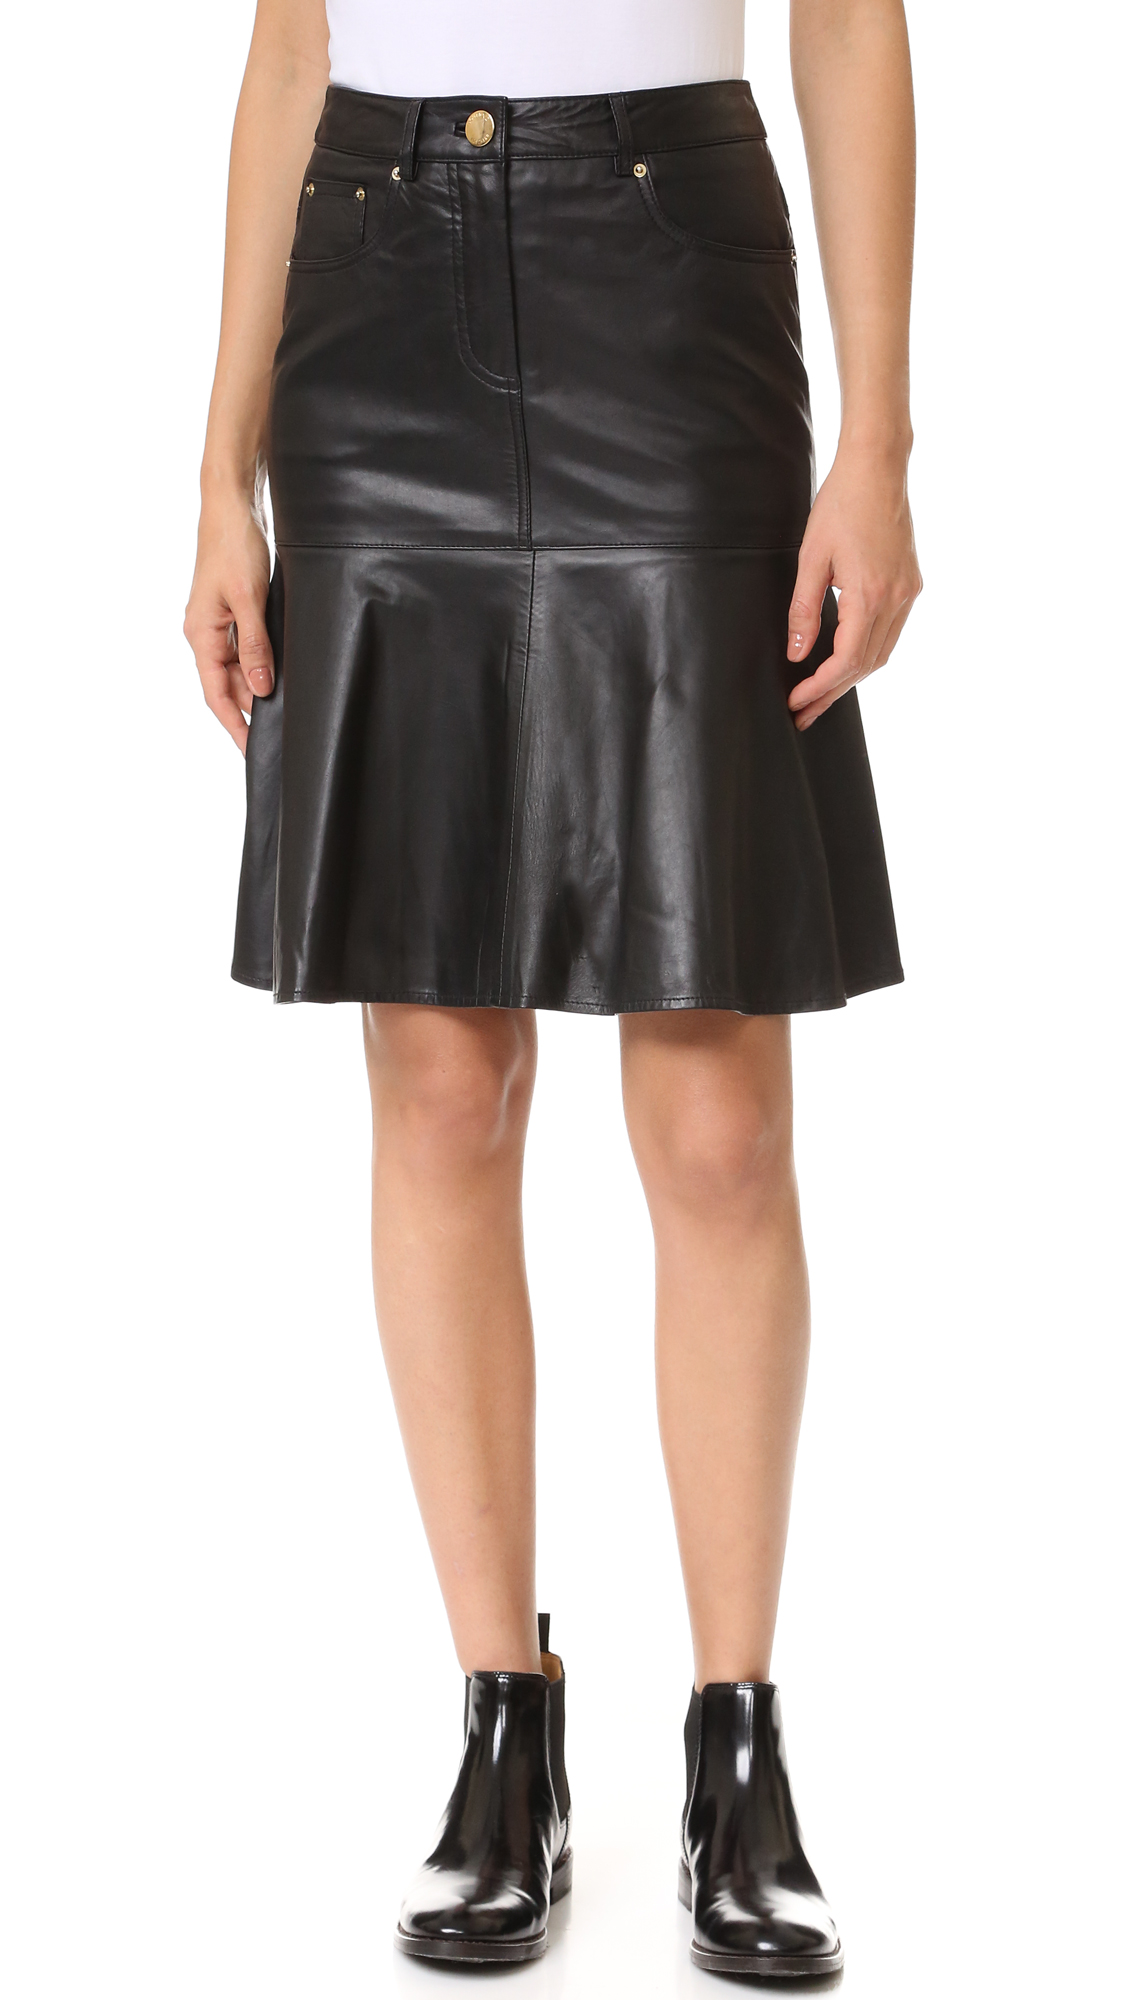 A lightweight leather Boutique Moschino skirt with a flared hem. 5 pocket styling. Button closure and zip fly. Lined. Fabric: Soft leather. Shell: 100% sheepskin. Lining: 100% polyester. Leather clean. Made in Italy. Measurements Length: 21.75in / 55cm Measurements from